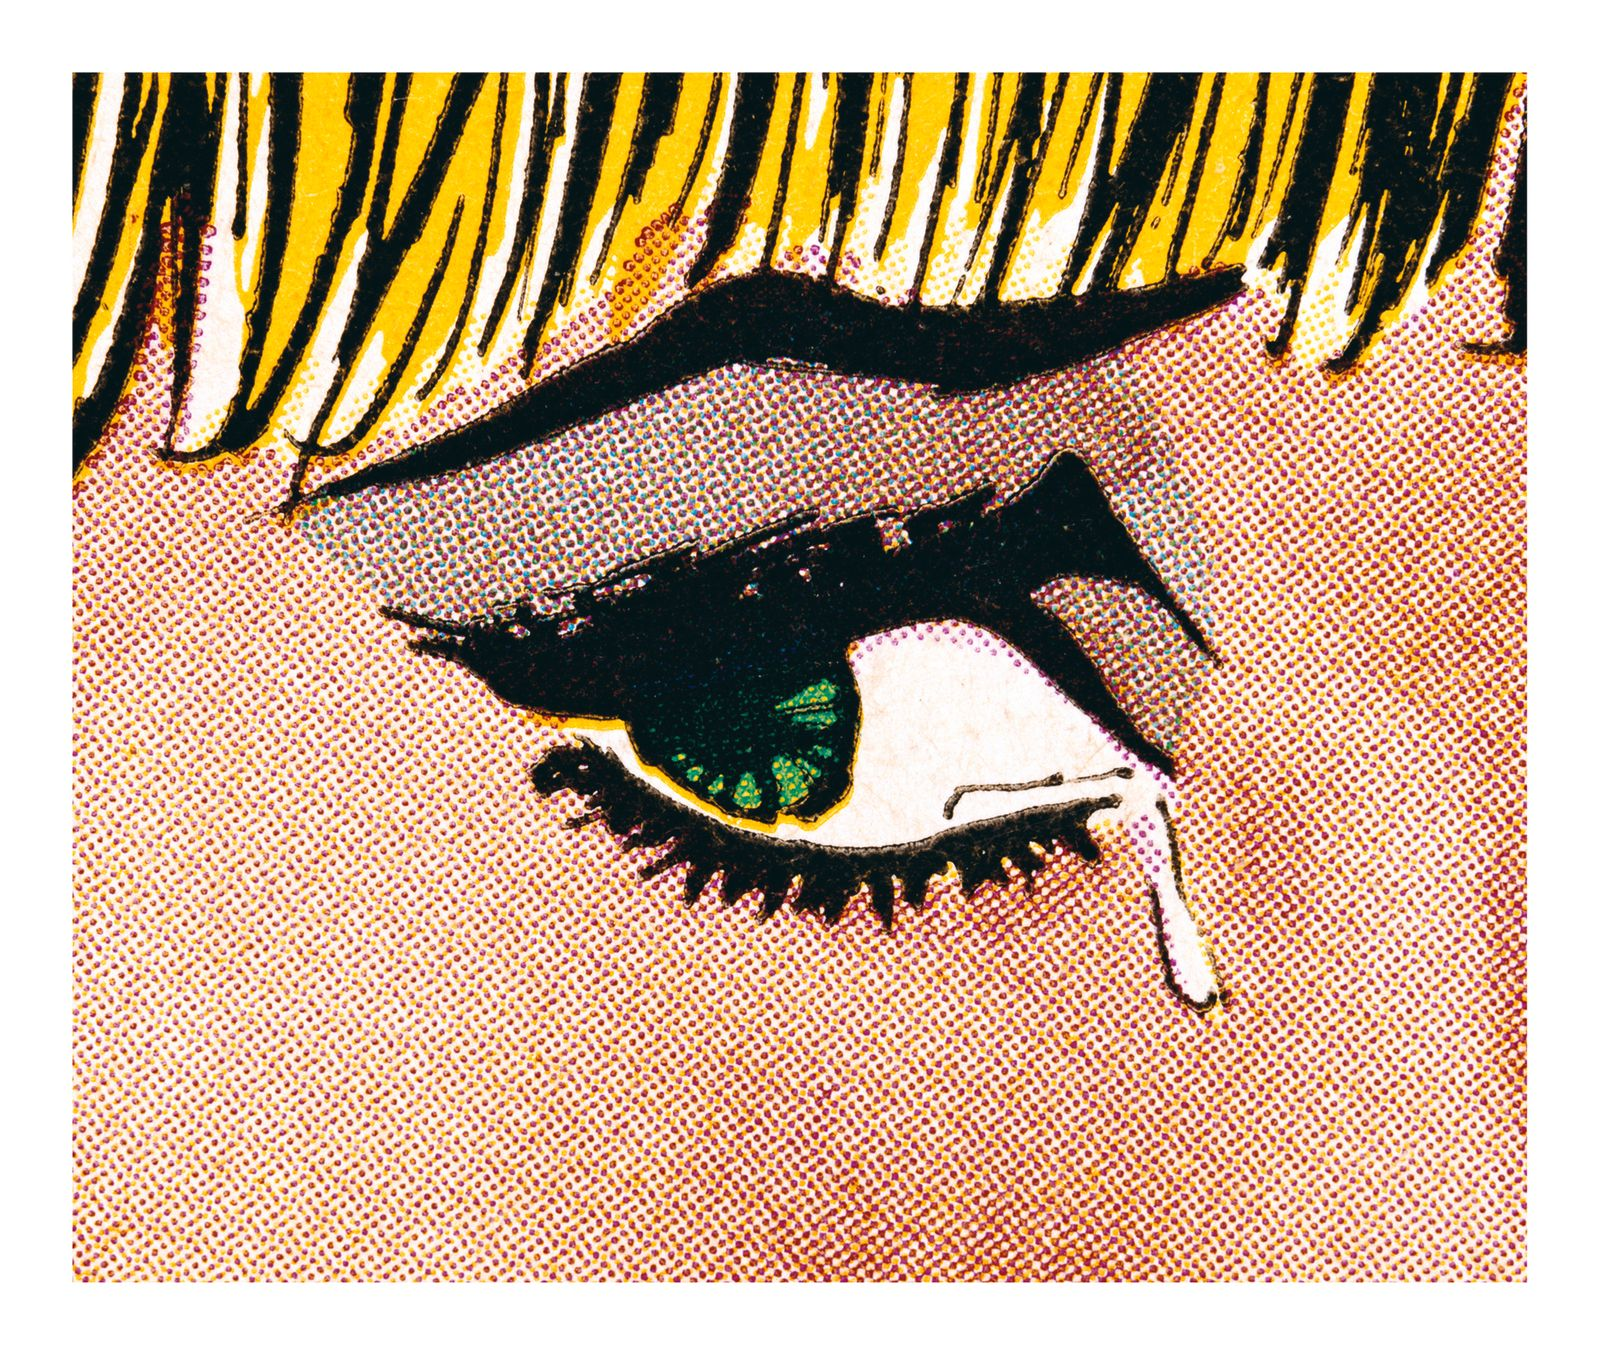 Collier_Woman Crying (Comic) 8